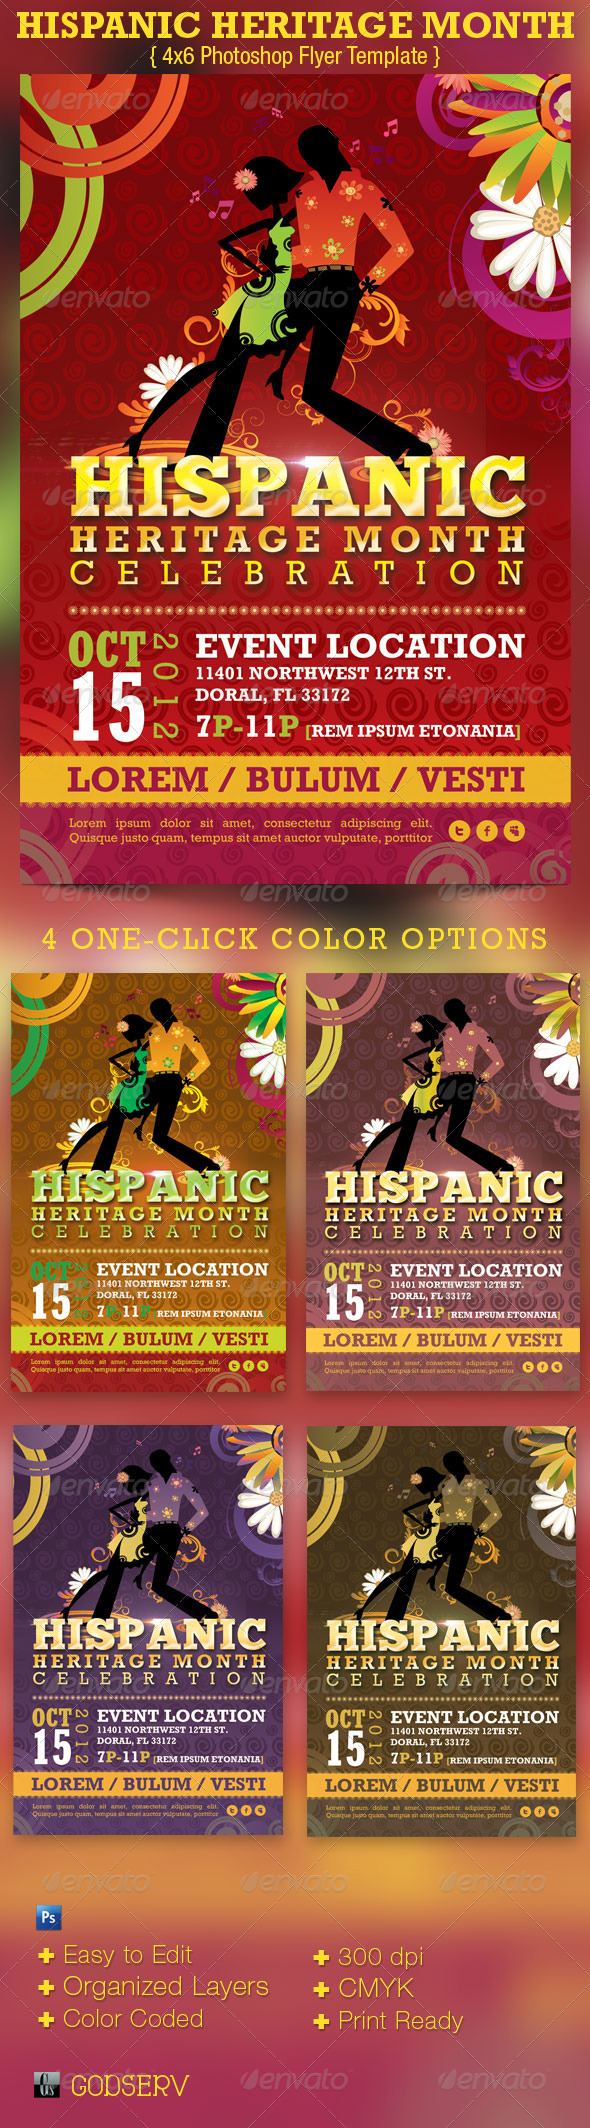 Hispanic Heritage Month Event Flyer Template - Events Flyers